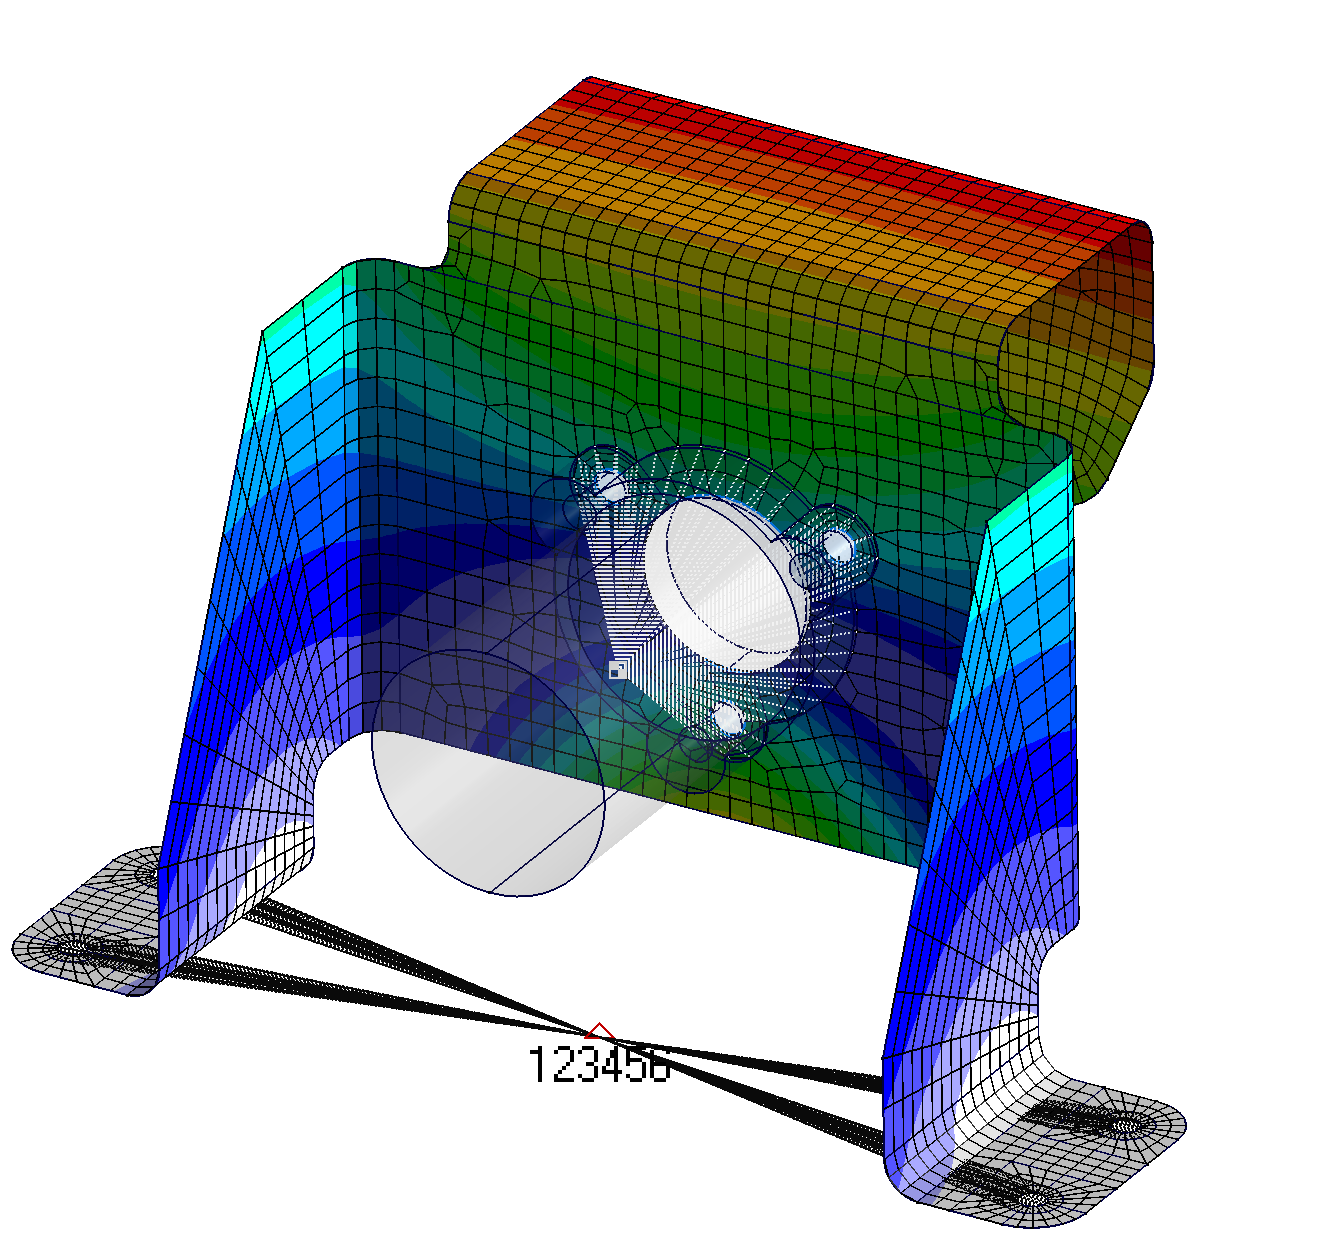 FEMAP with NX Nastran: Dynamic Response